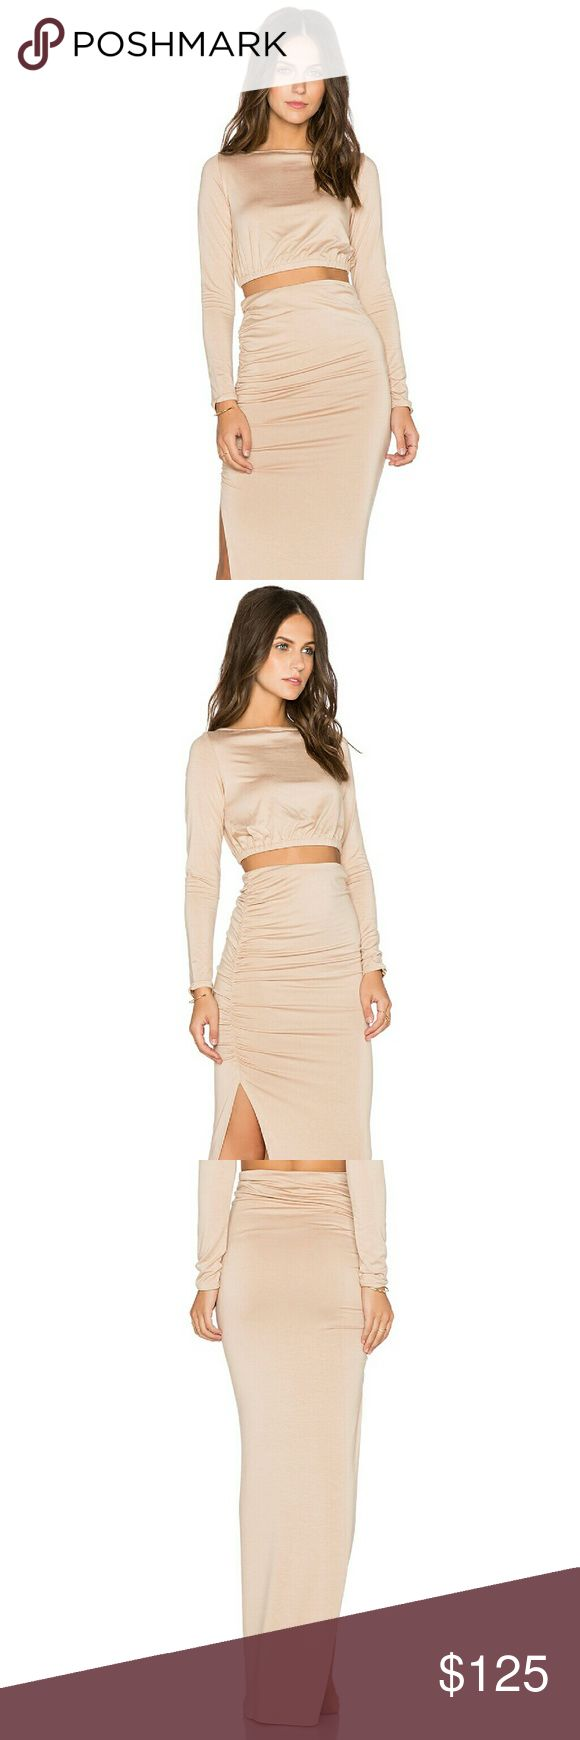 Revolve × Rachel Pally crop top ruched skirt Sz S New $246 Revolve × Rachel Pally crop top ruched skirt set on Bamboo SZ S Rachel Pally Other